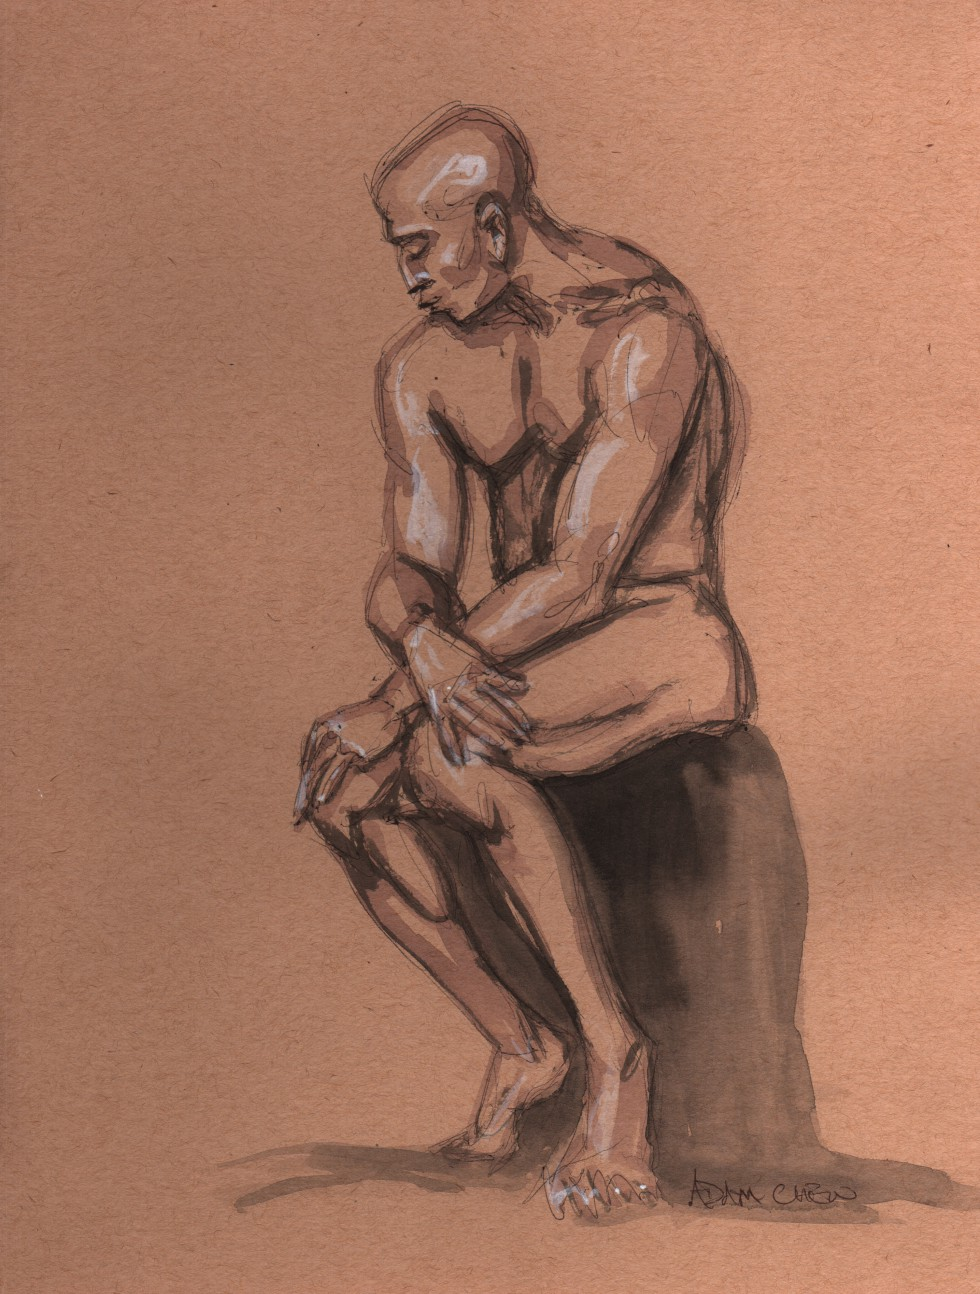 man sitting - AdamChew, 2014